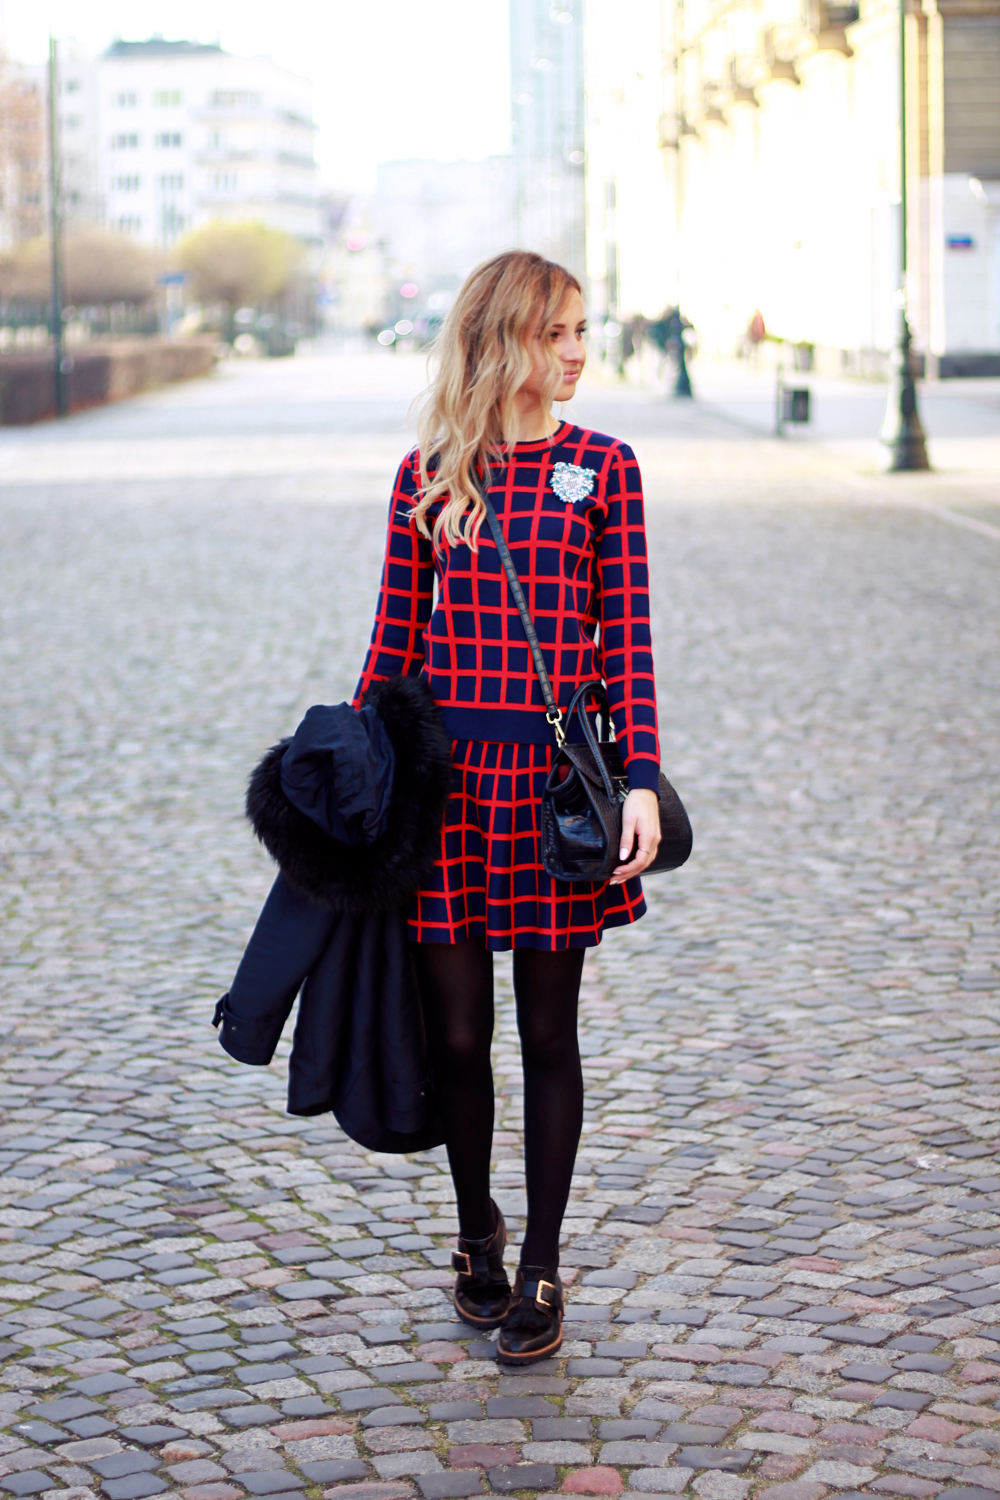 blonde fashion blogger girl look combo outfit street style tumblr vogue ootd